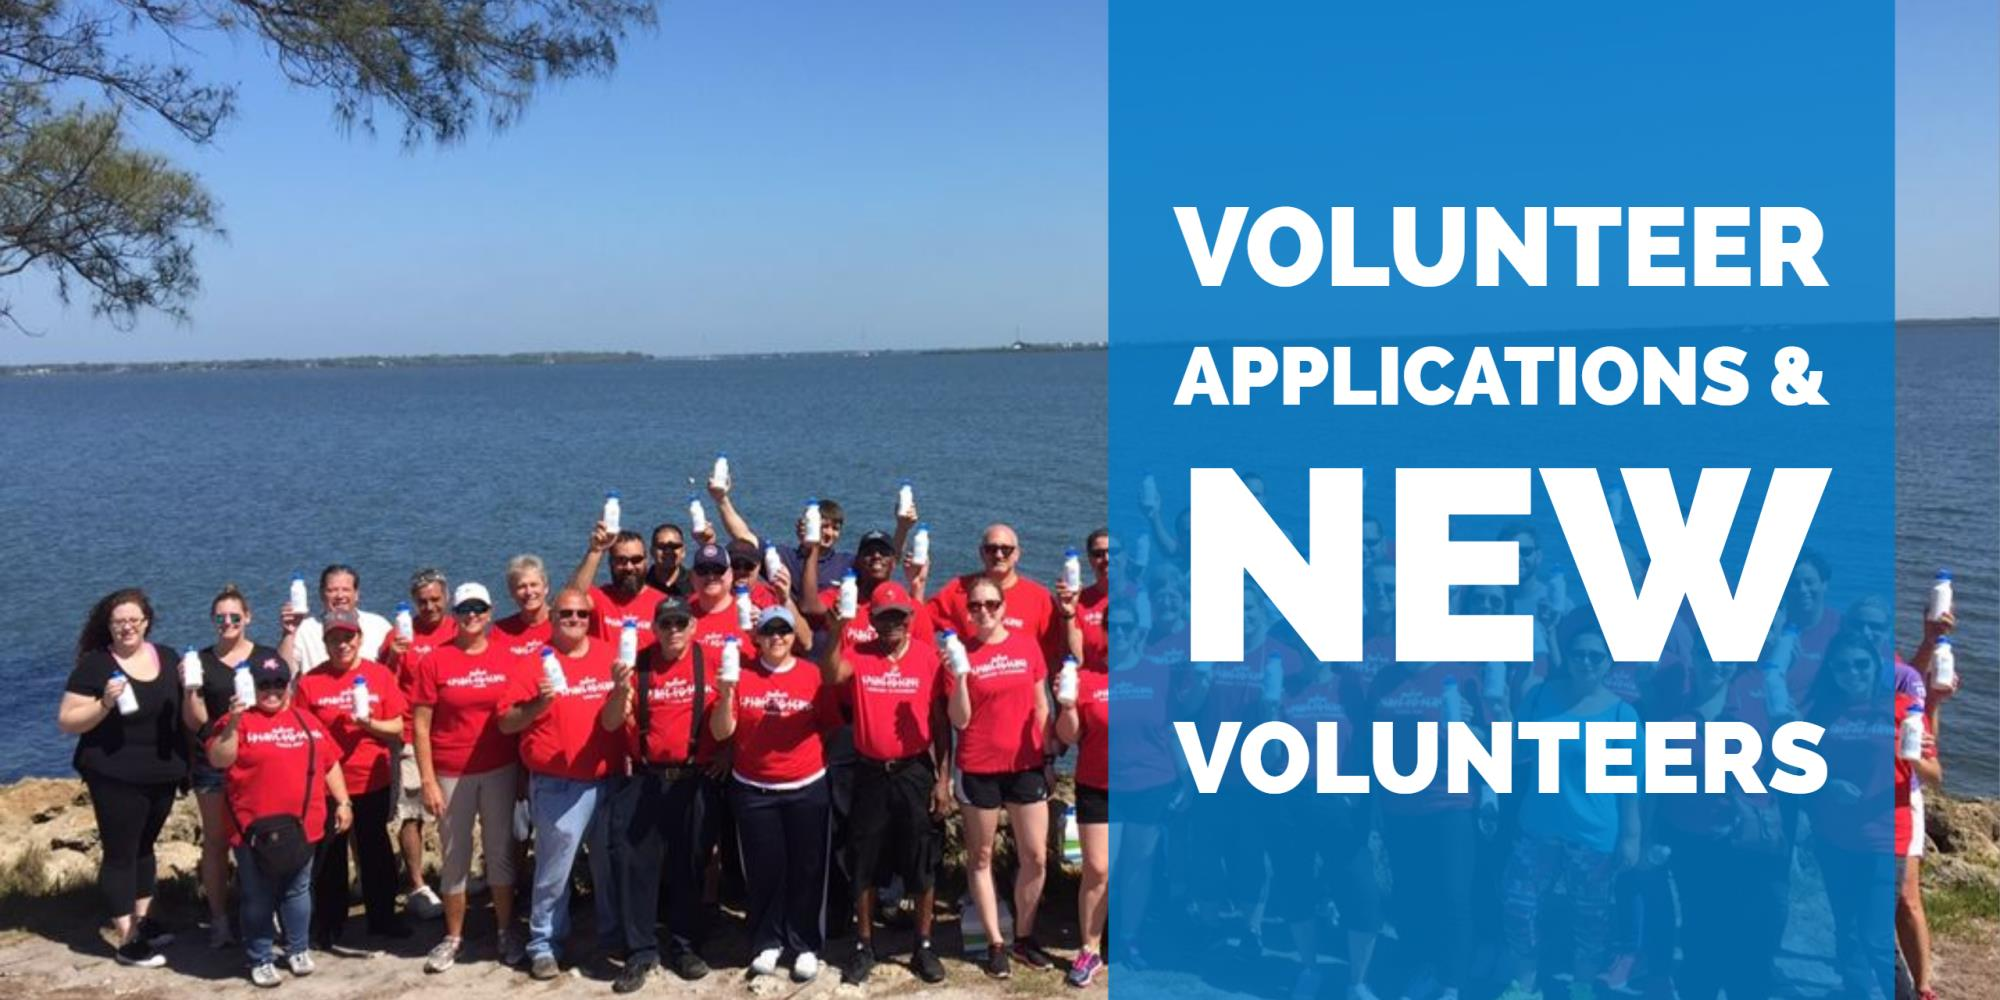 Volunteer applications and new volunteers